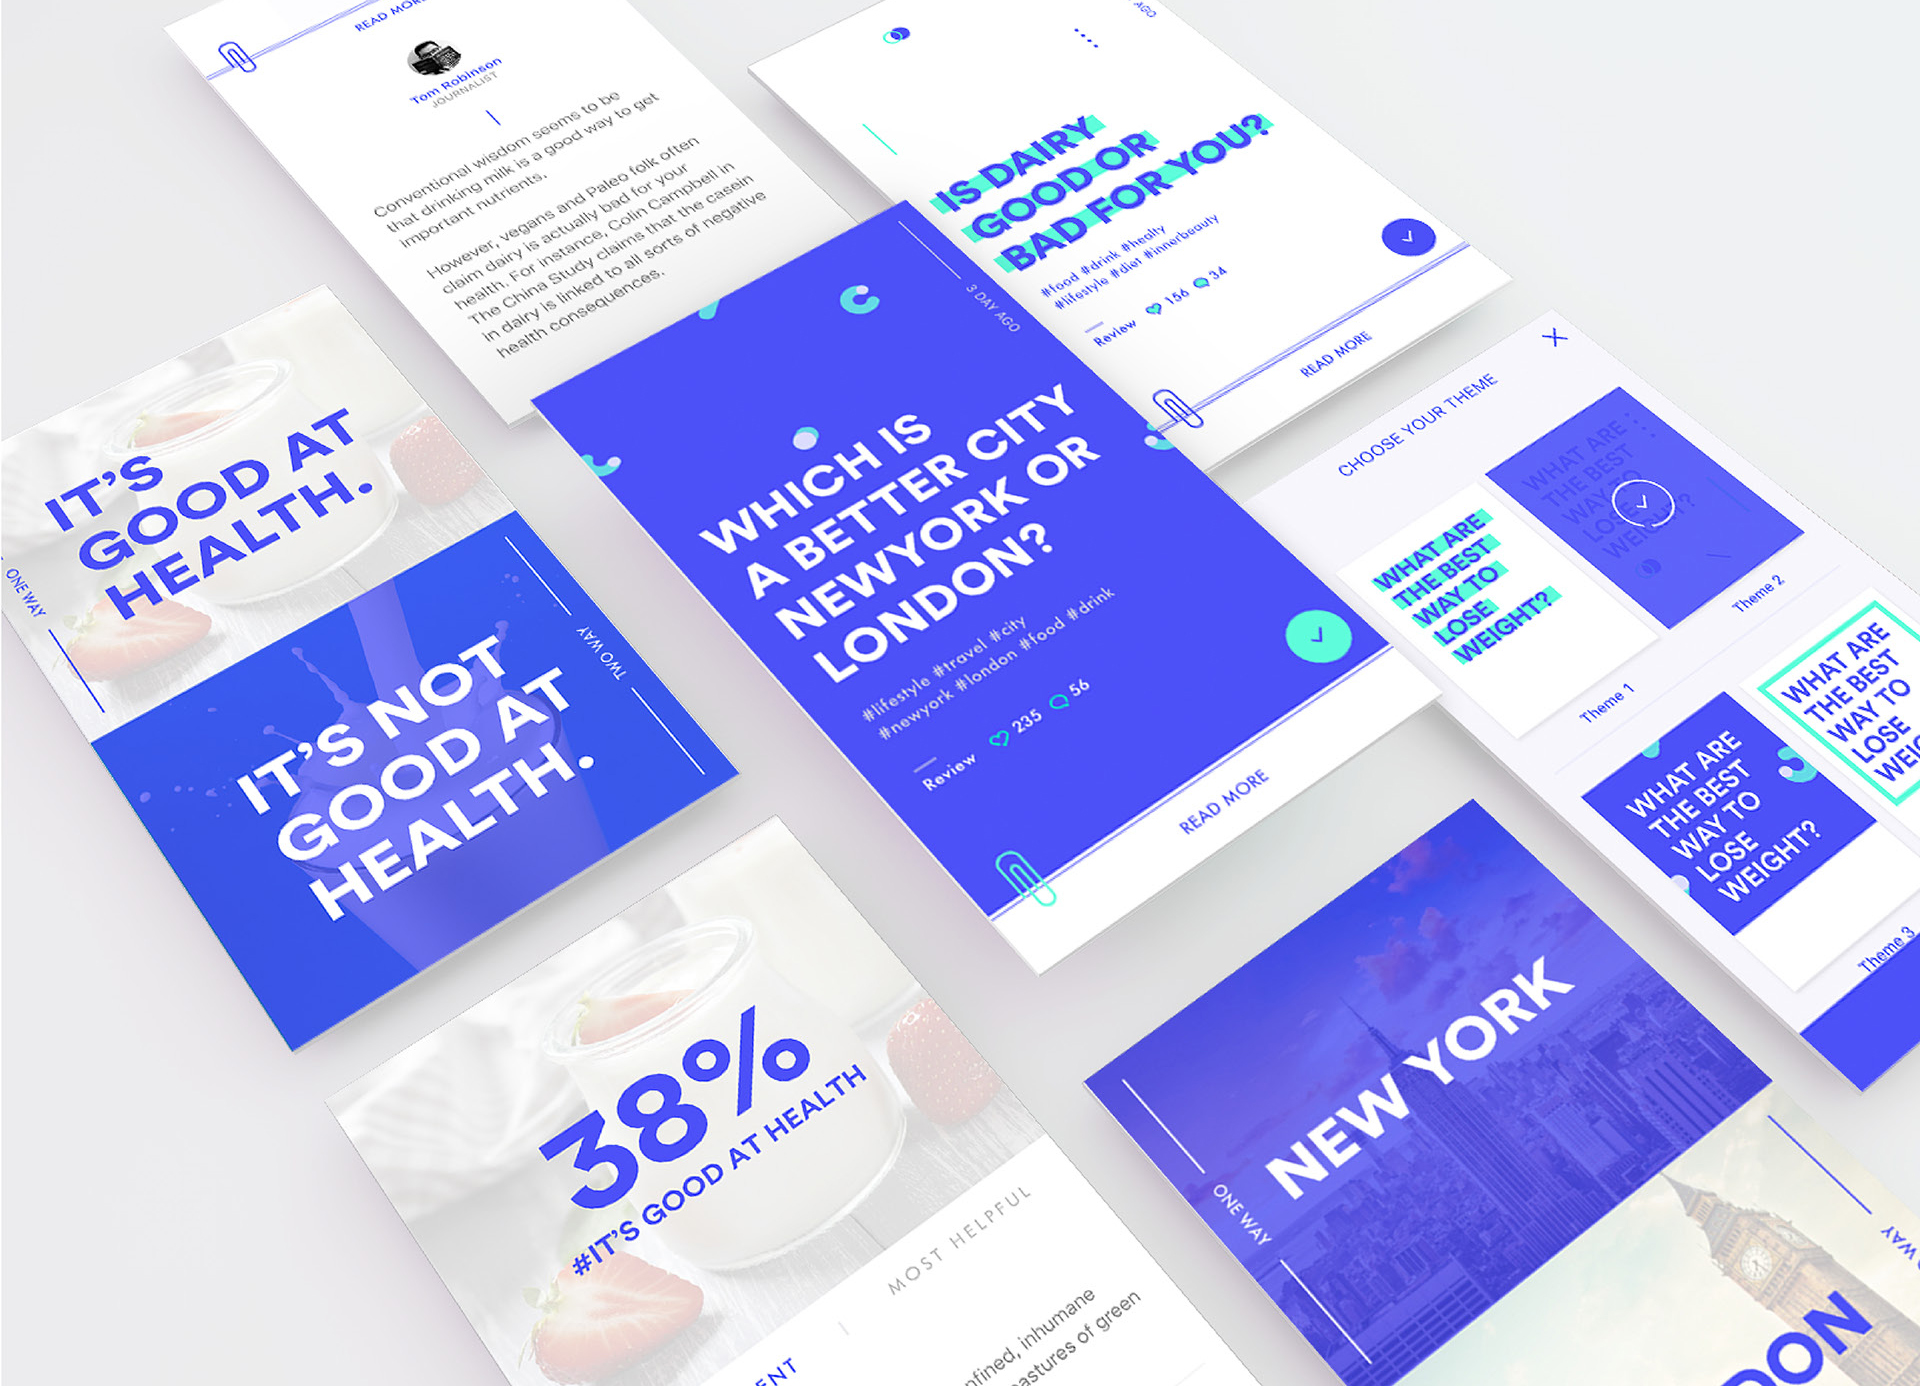 Mobile Application & UI/UX: Tooway App